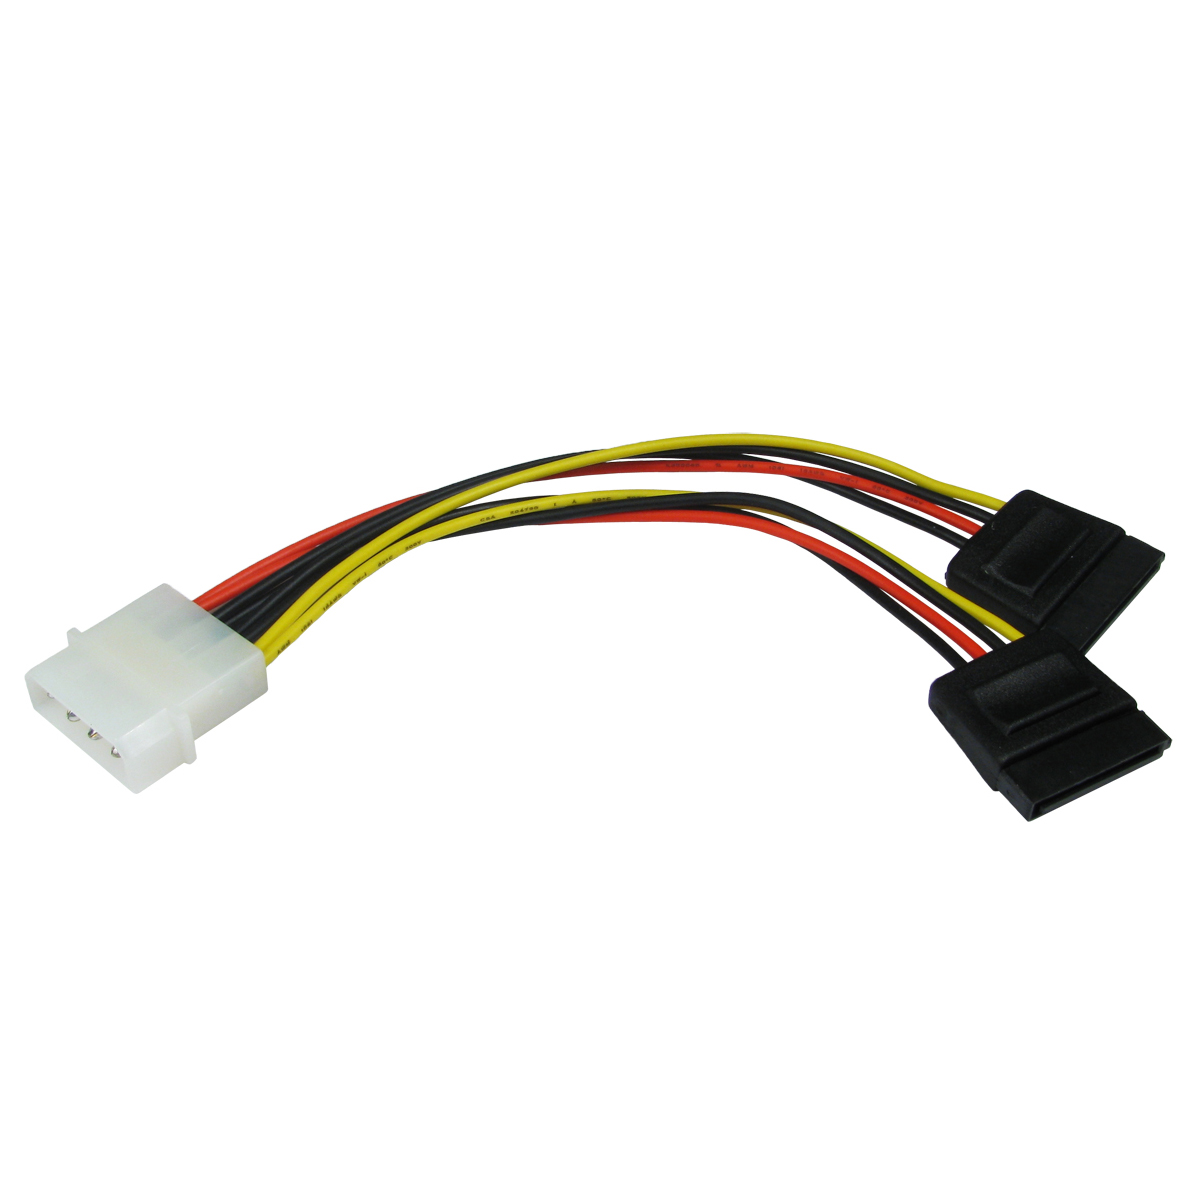 Sata Power Splitter : Molex to sata serial ata power splitter hdd cable lead